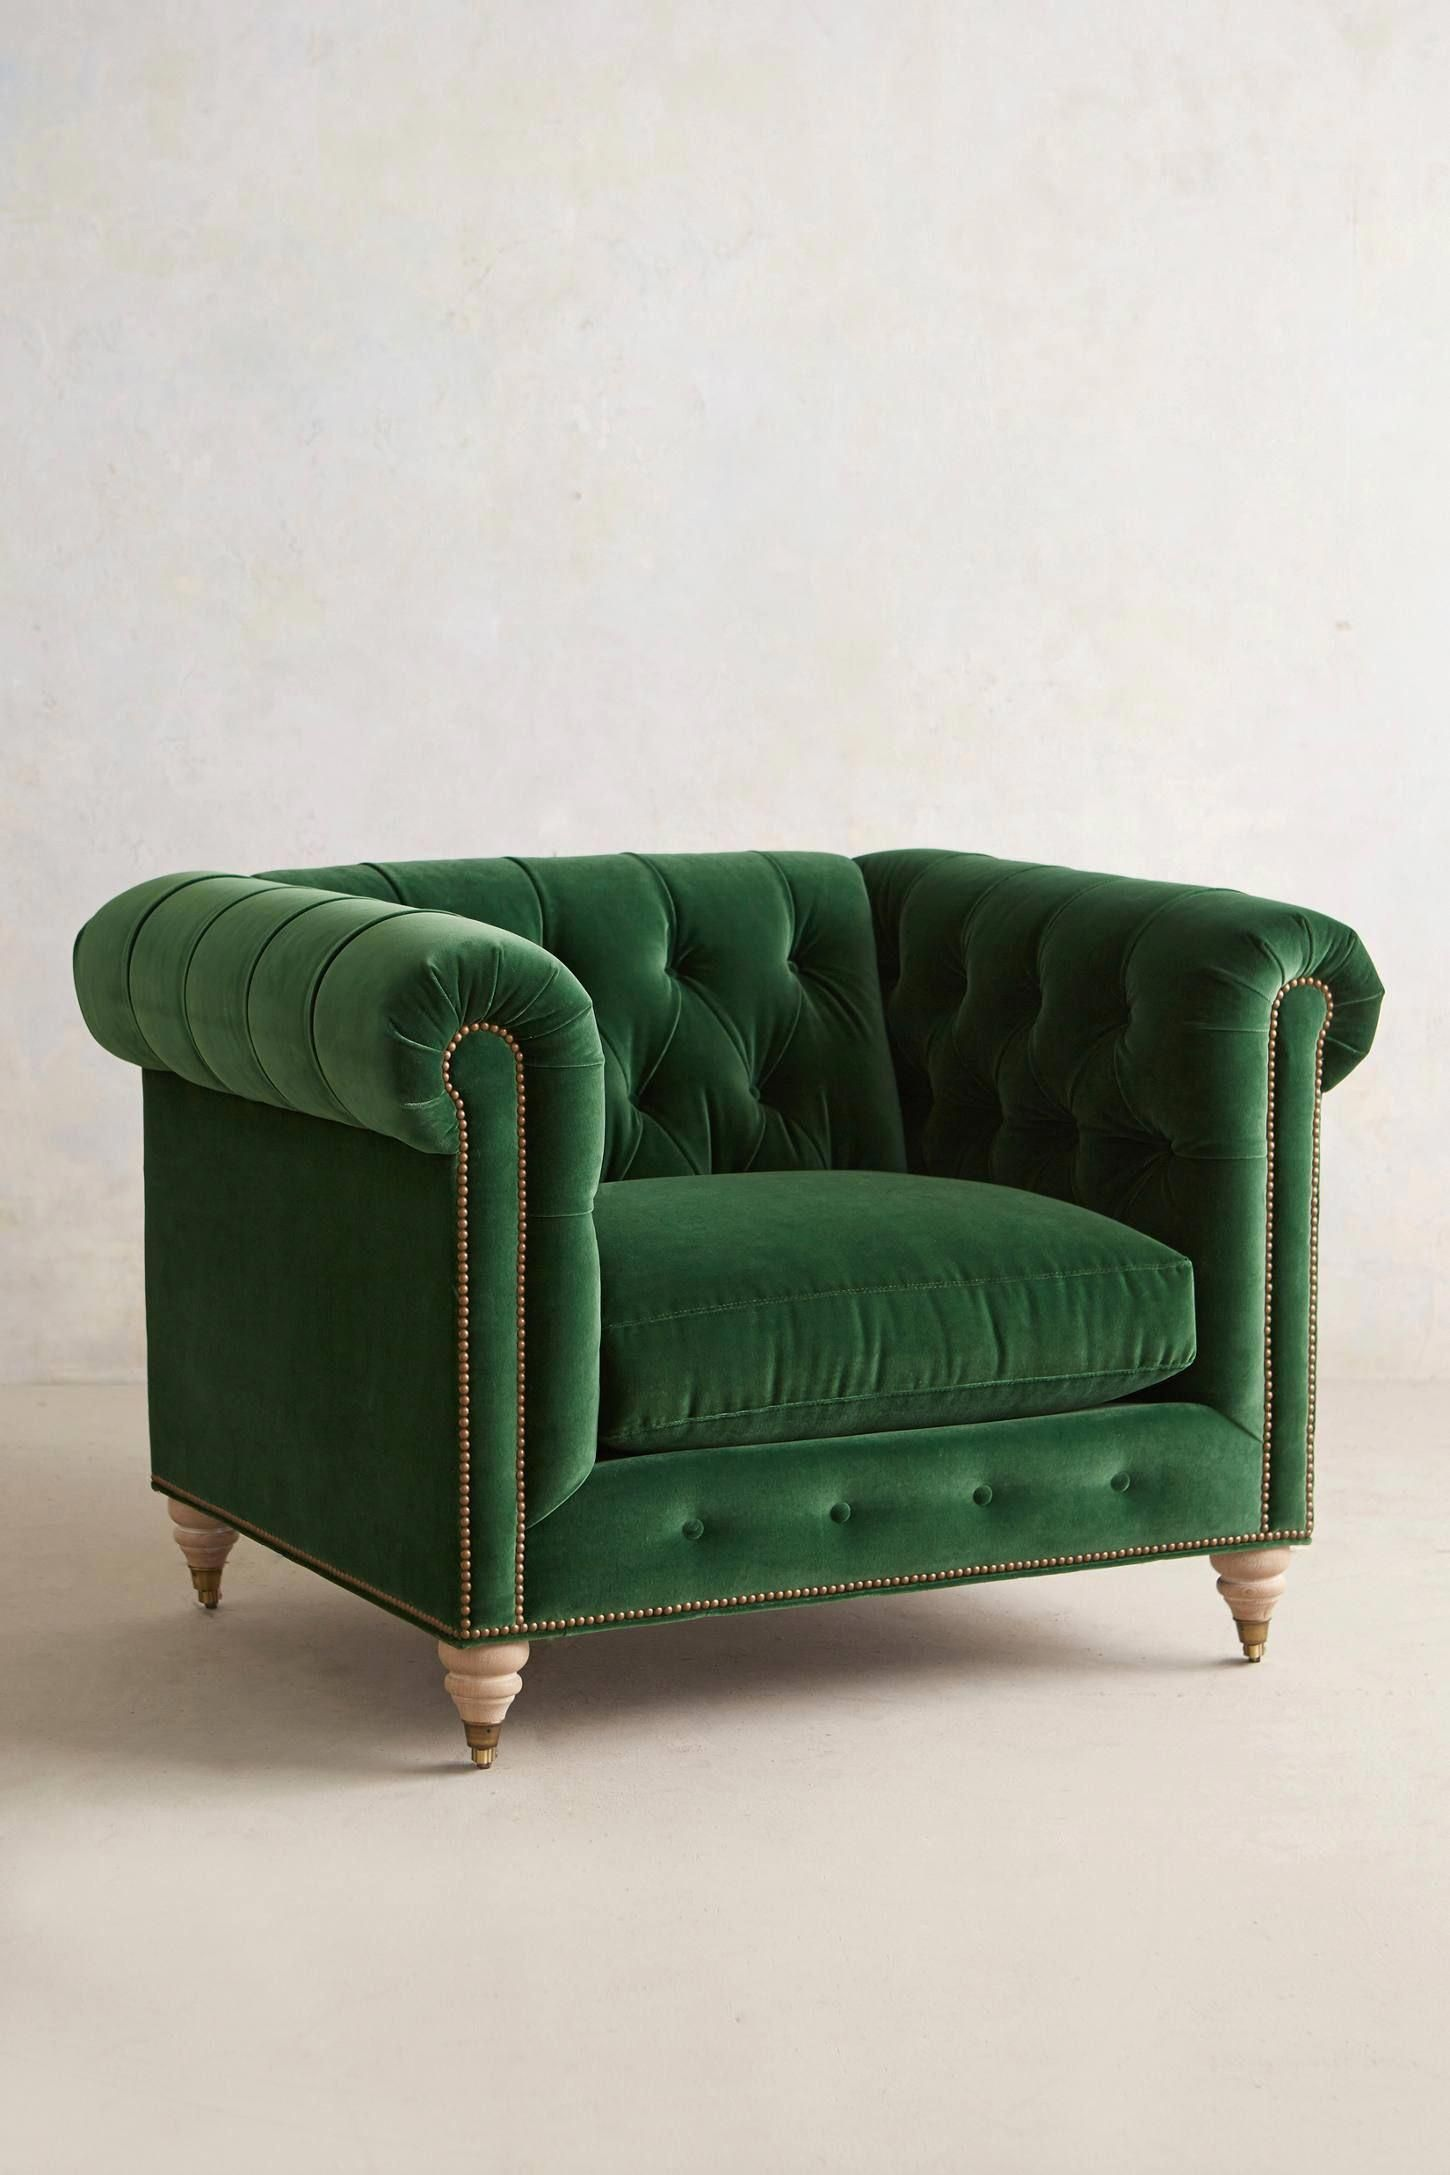 We Claim This Reading Chair Now Downton Abbey As Seen On